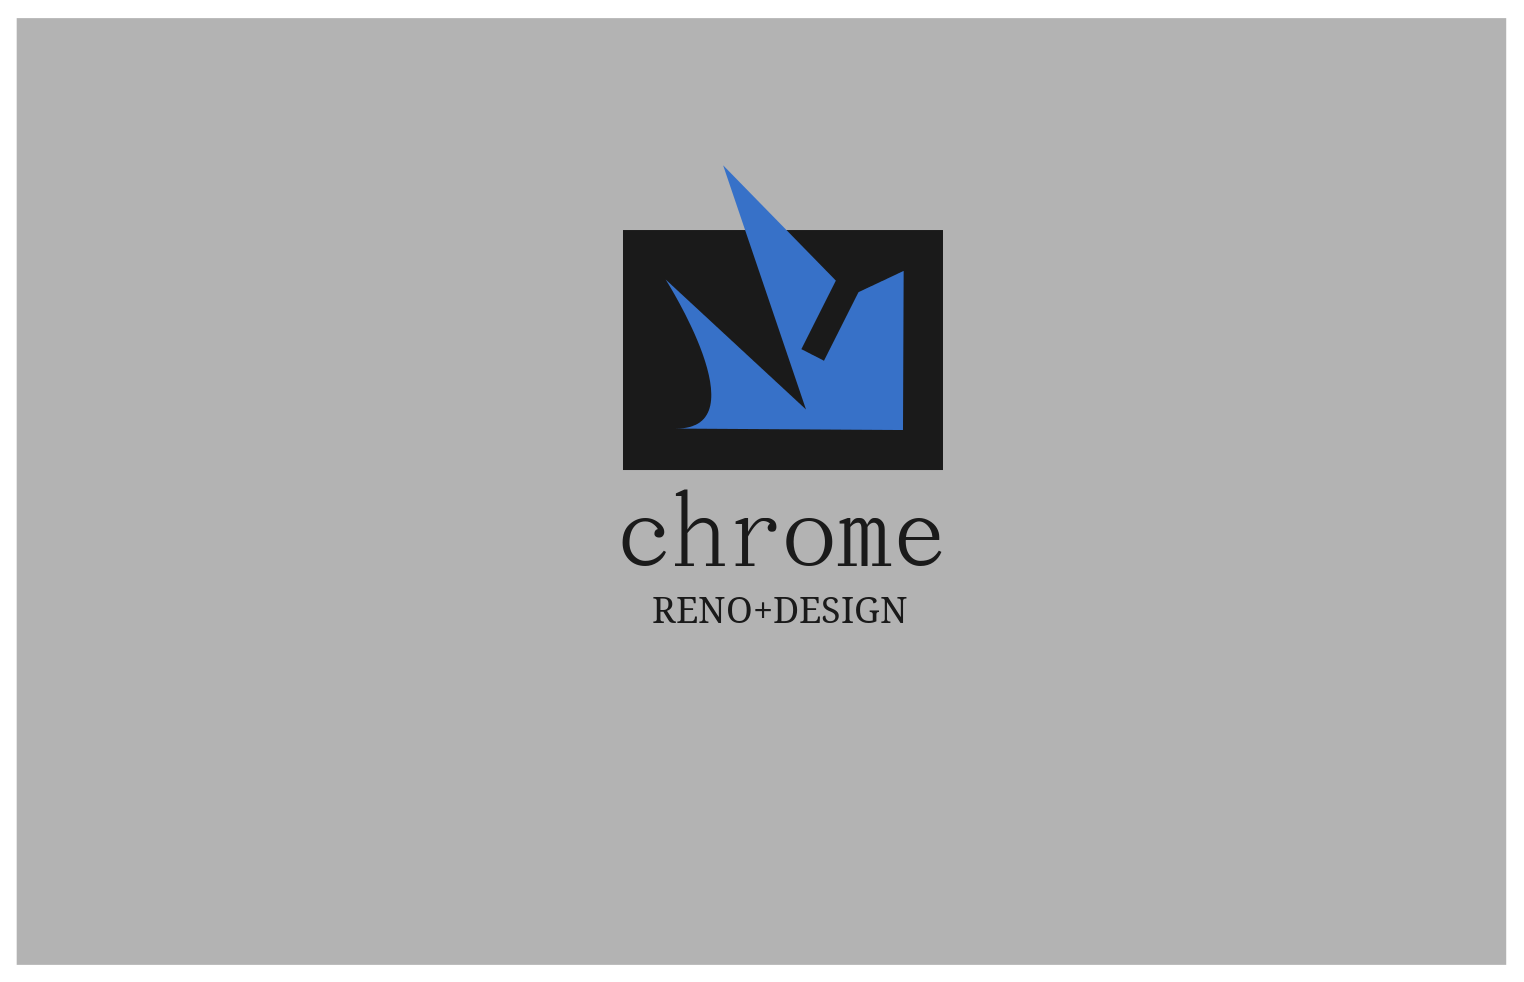 Logo Design by JaroslavProcka - Entry No. 178 in the Logo Design Contest Inspiring Logo Design for Chroma Reno+Design.